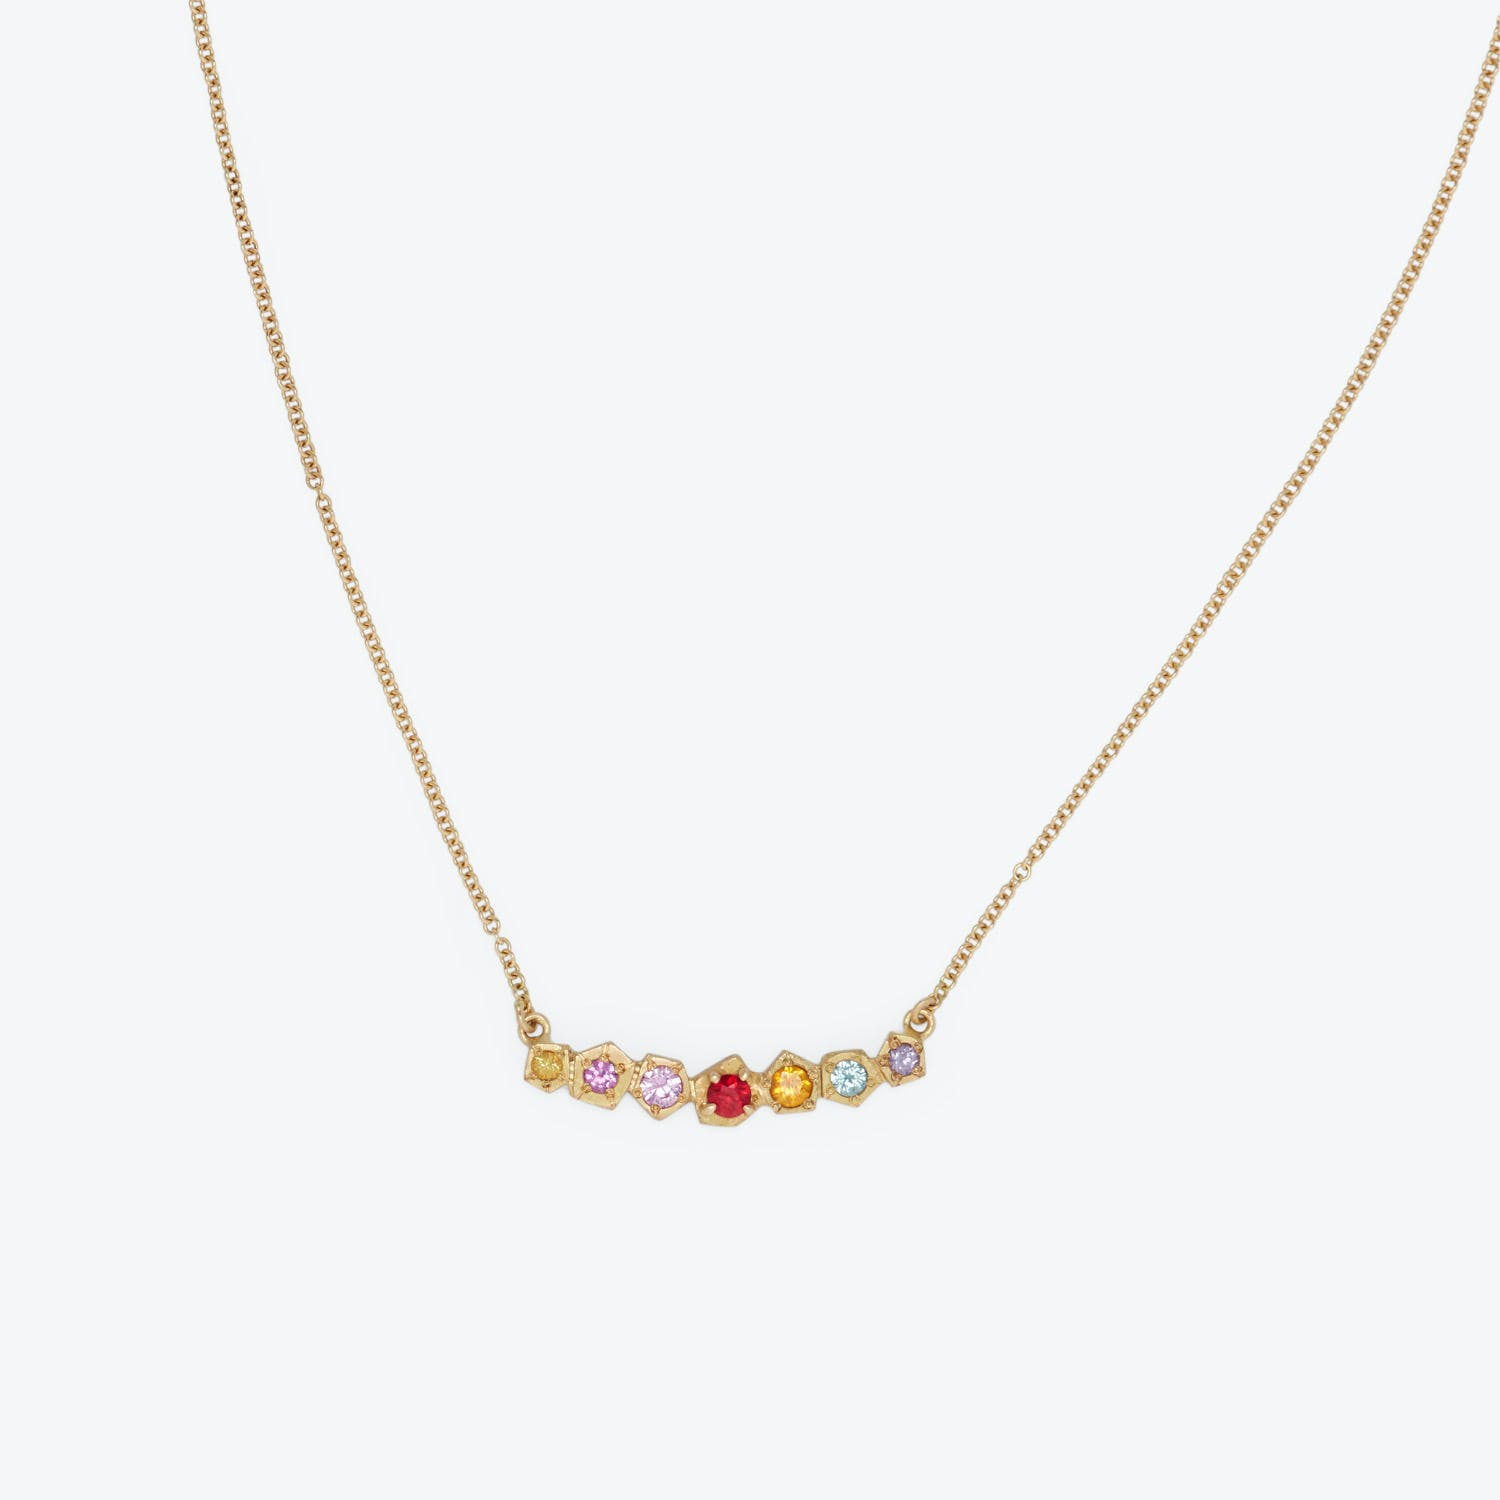 Annie Fensterstock Multicolor Sapphire & Ruby Large Rainbow Rock Necklace